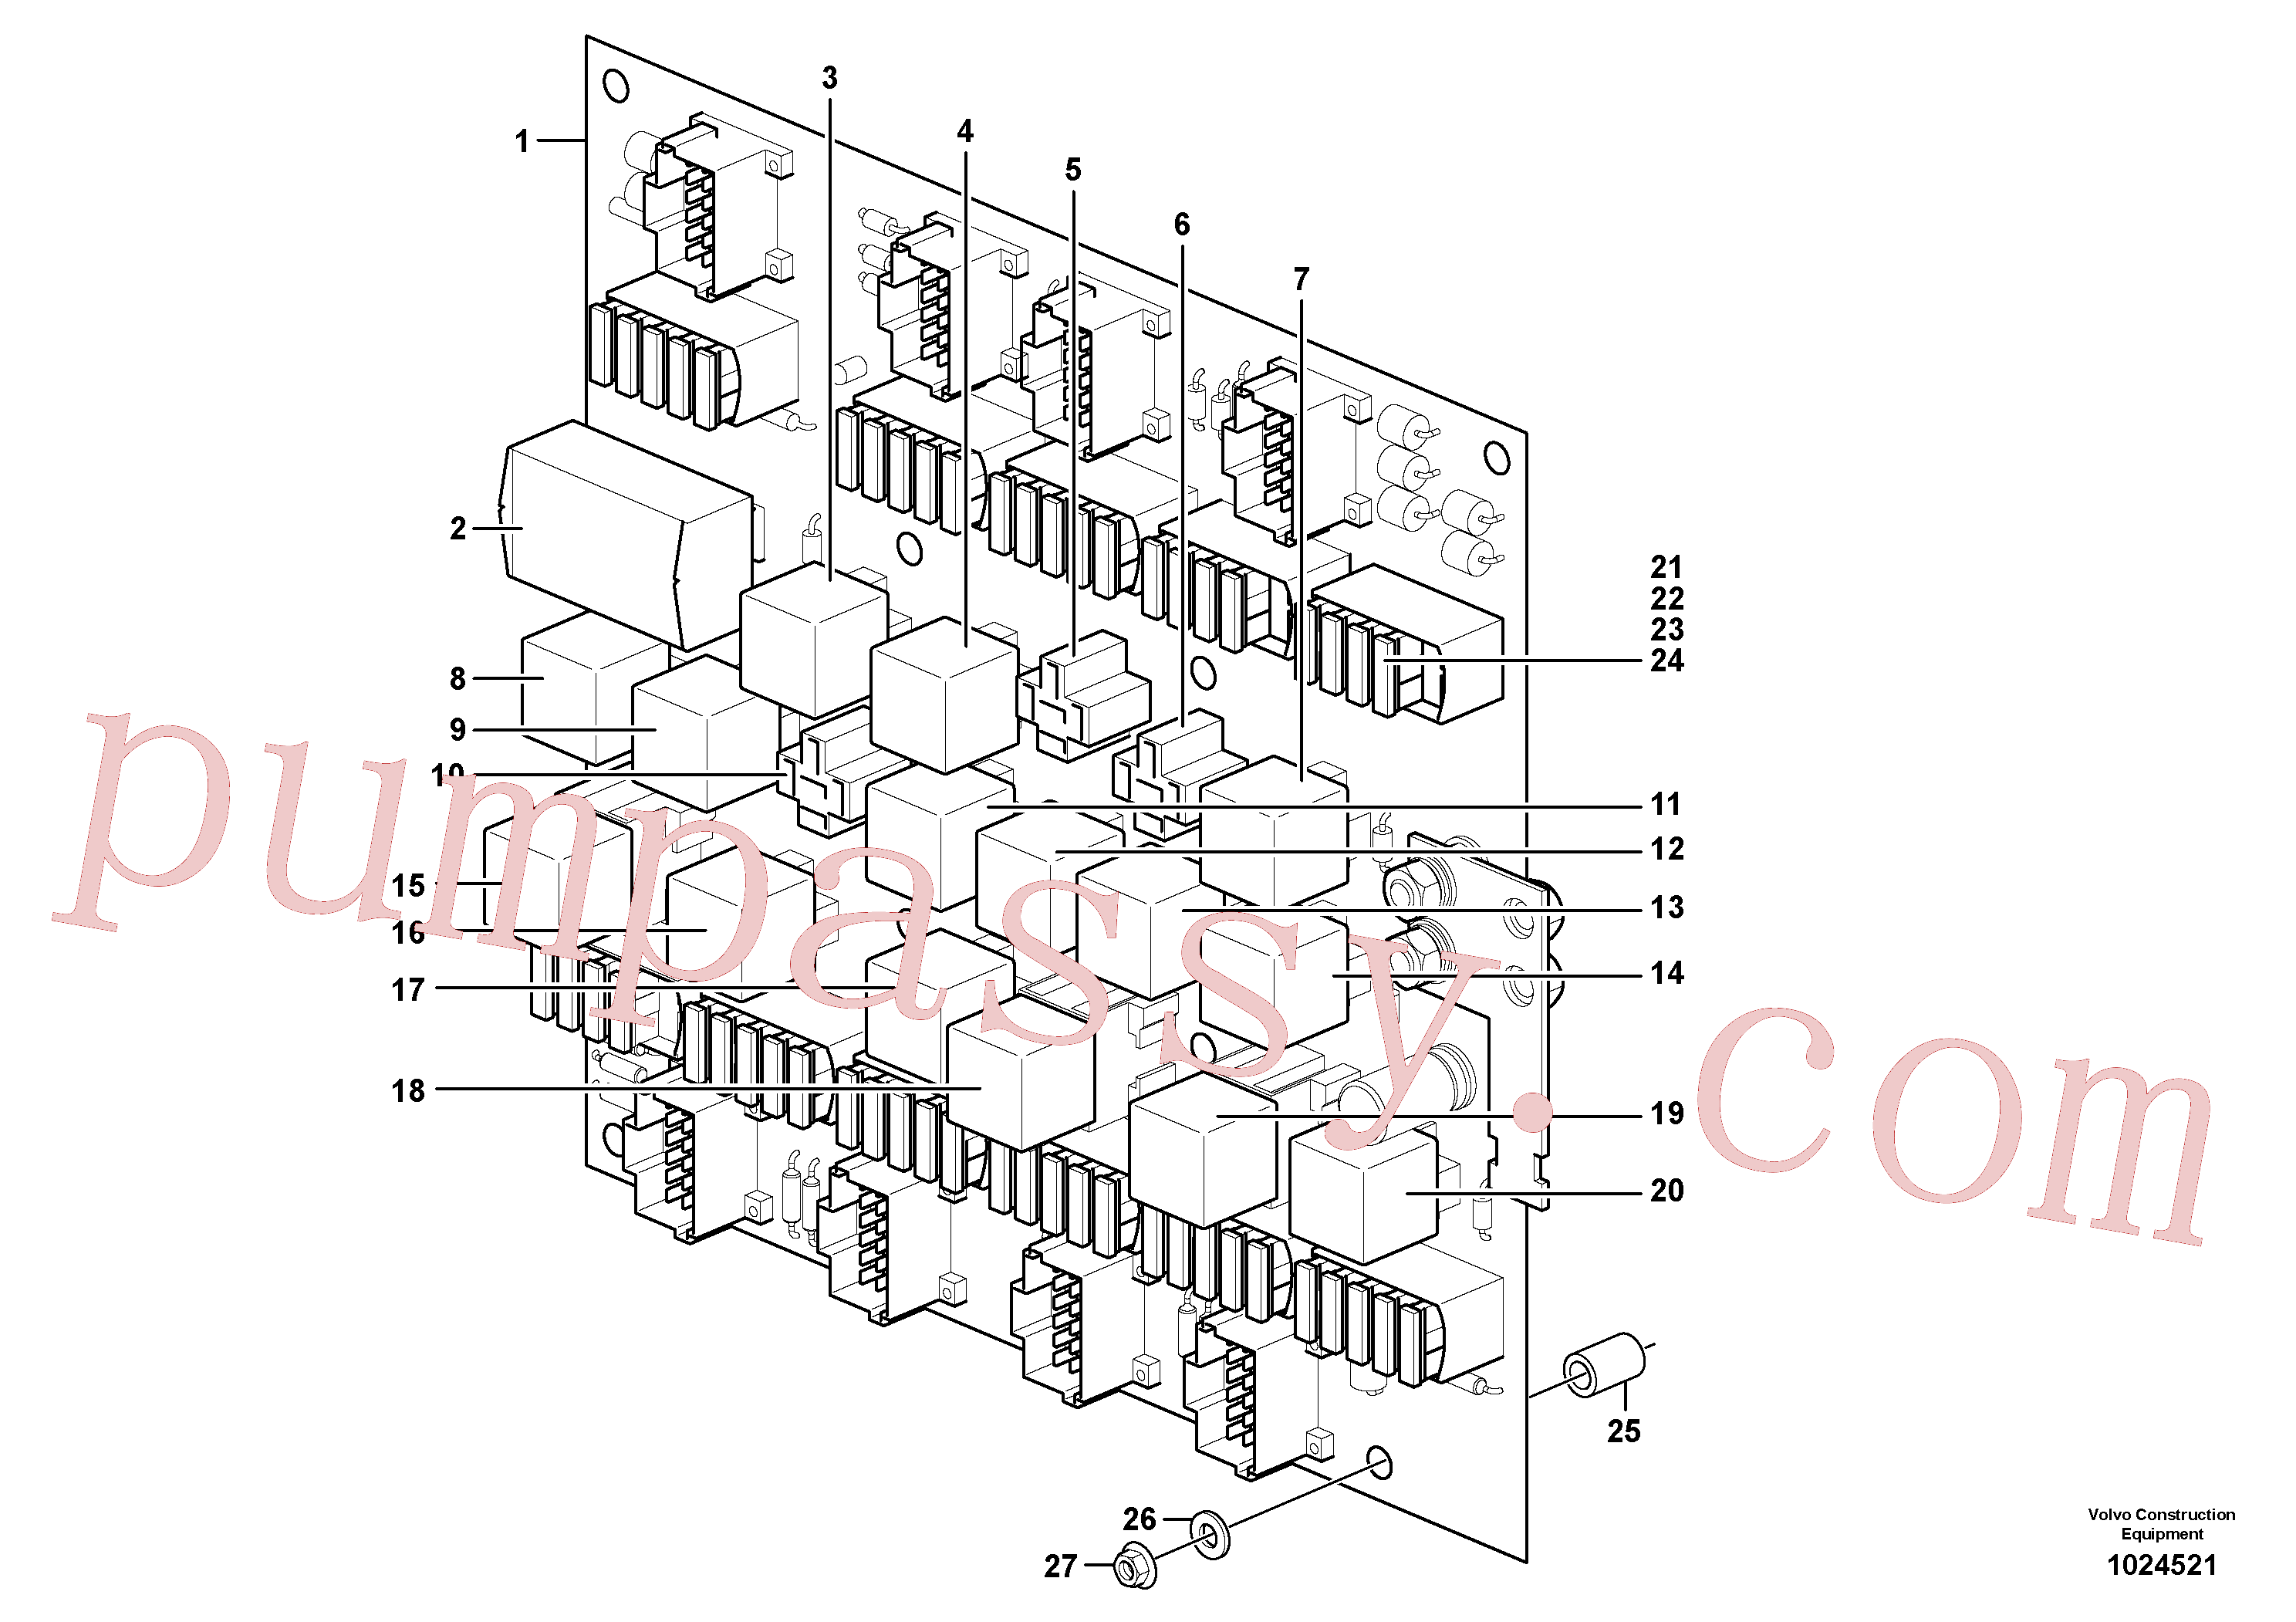 VOE14212890 for Volvo Circuit board(1024521 assembly)